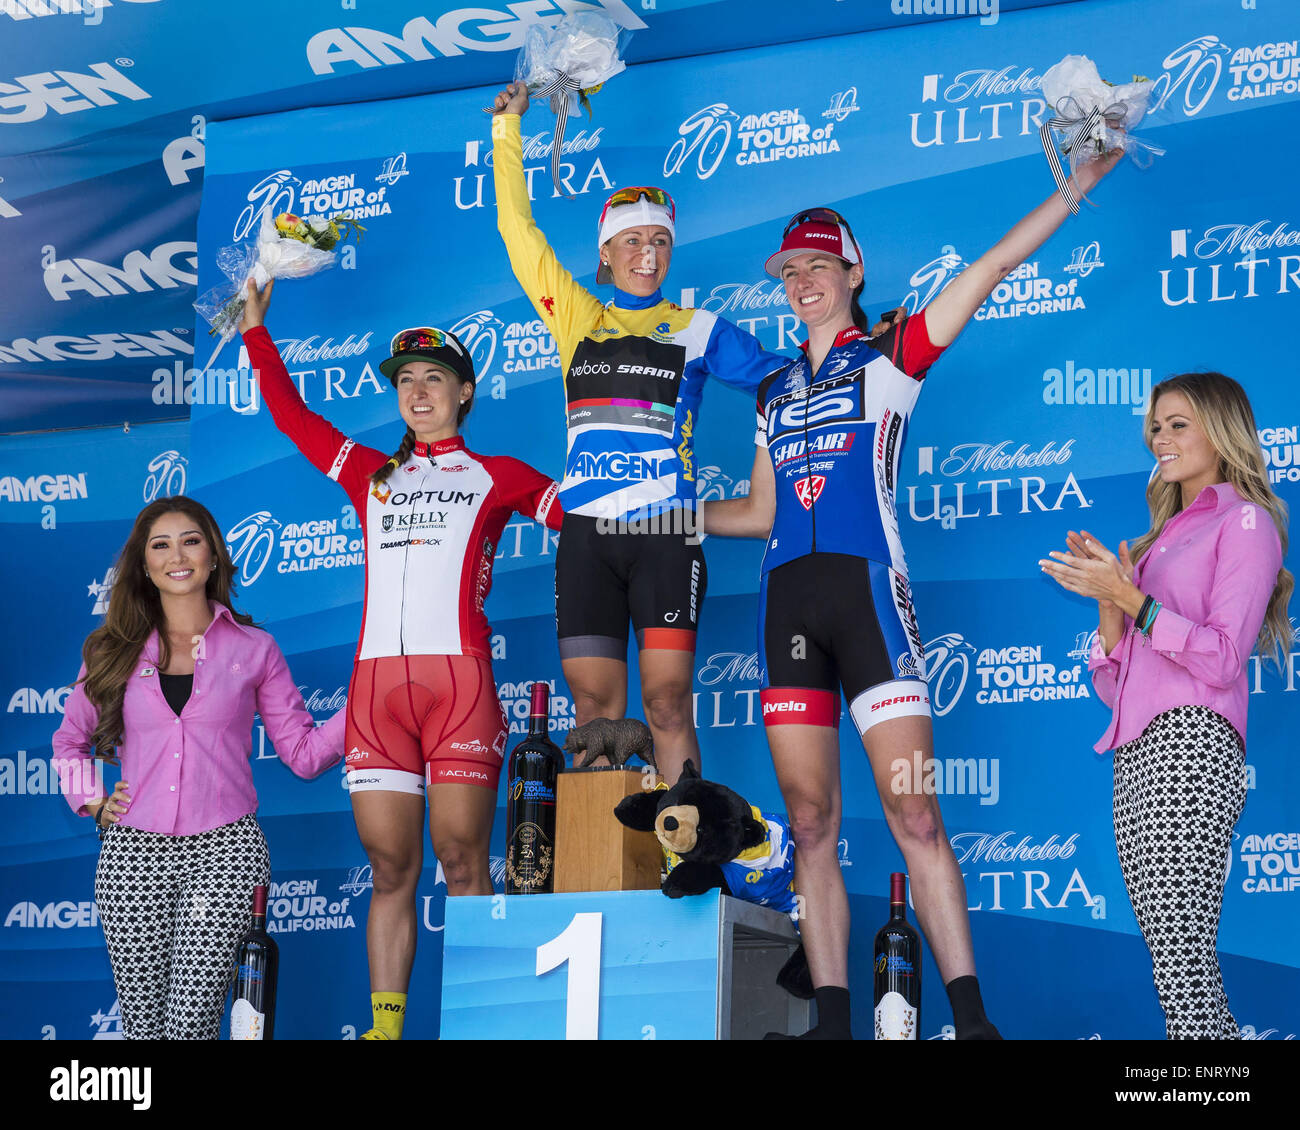 Sacramento, California, USA. 10th May, 2015. Sunday, May 10, 2015.Amgen Tour of California Women's Race General - Stock Image